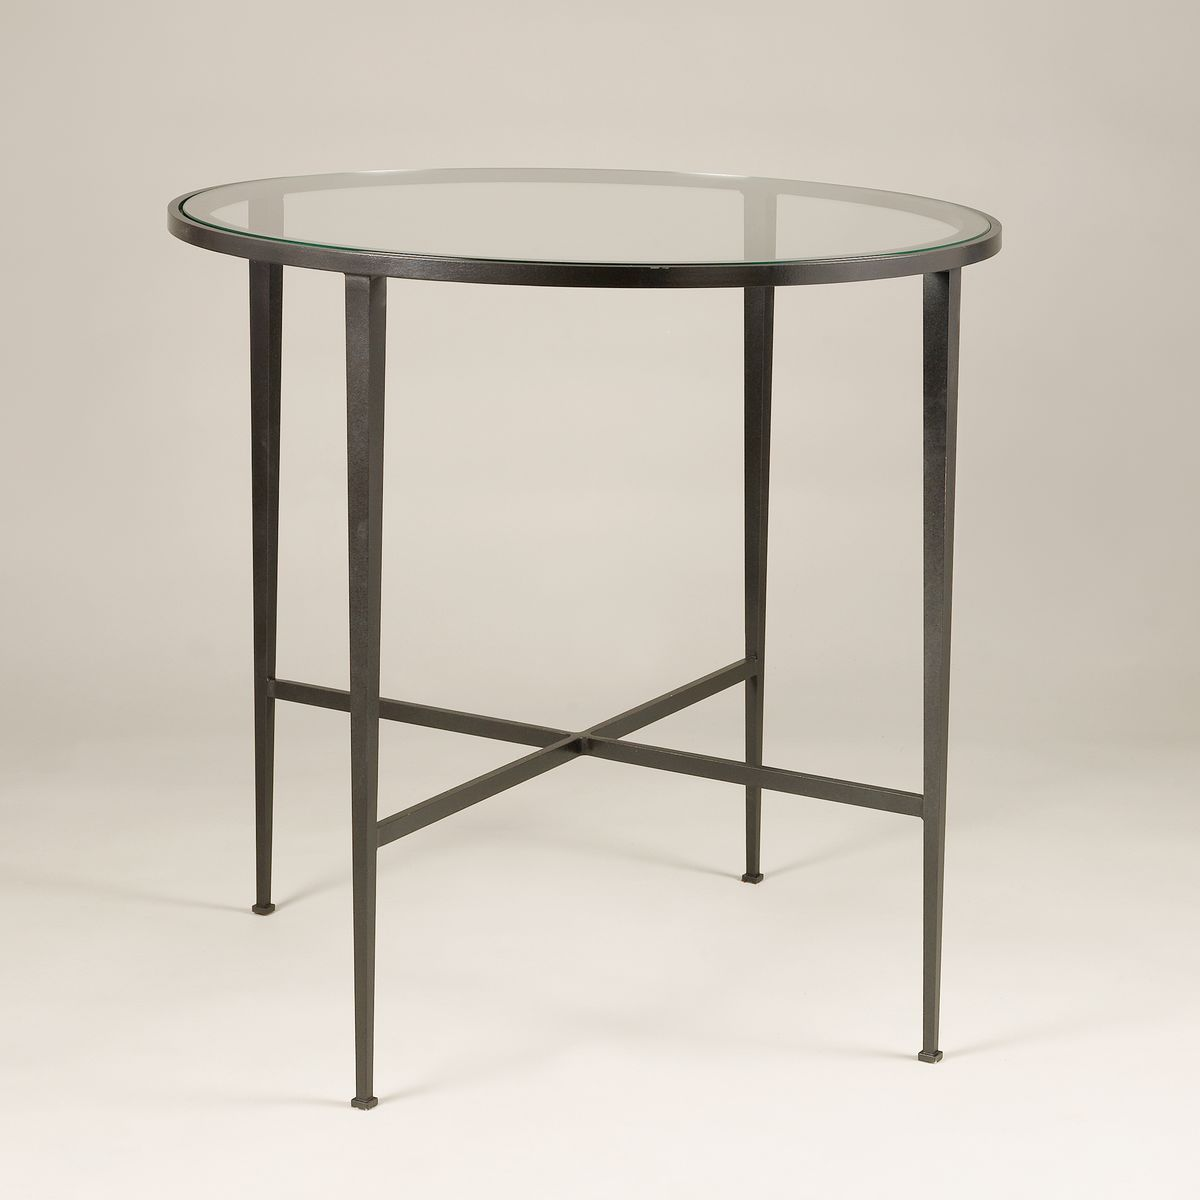 Helmsley table vaughan designs with images table